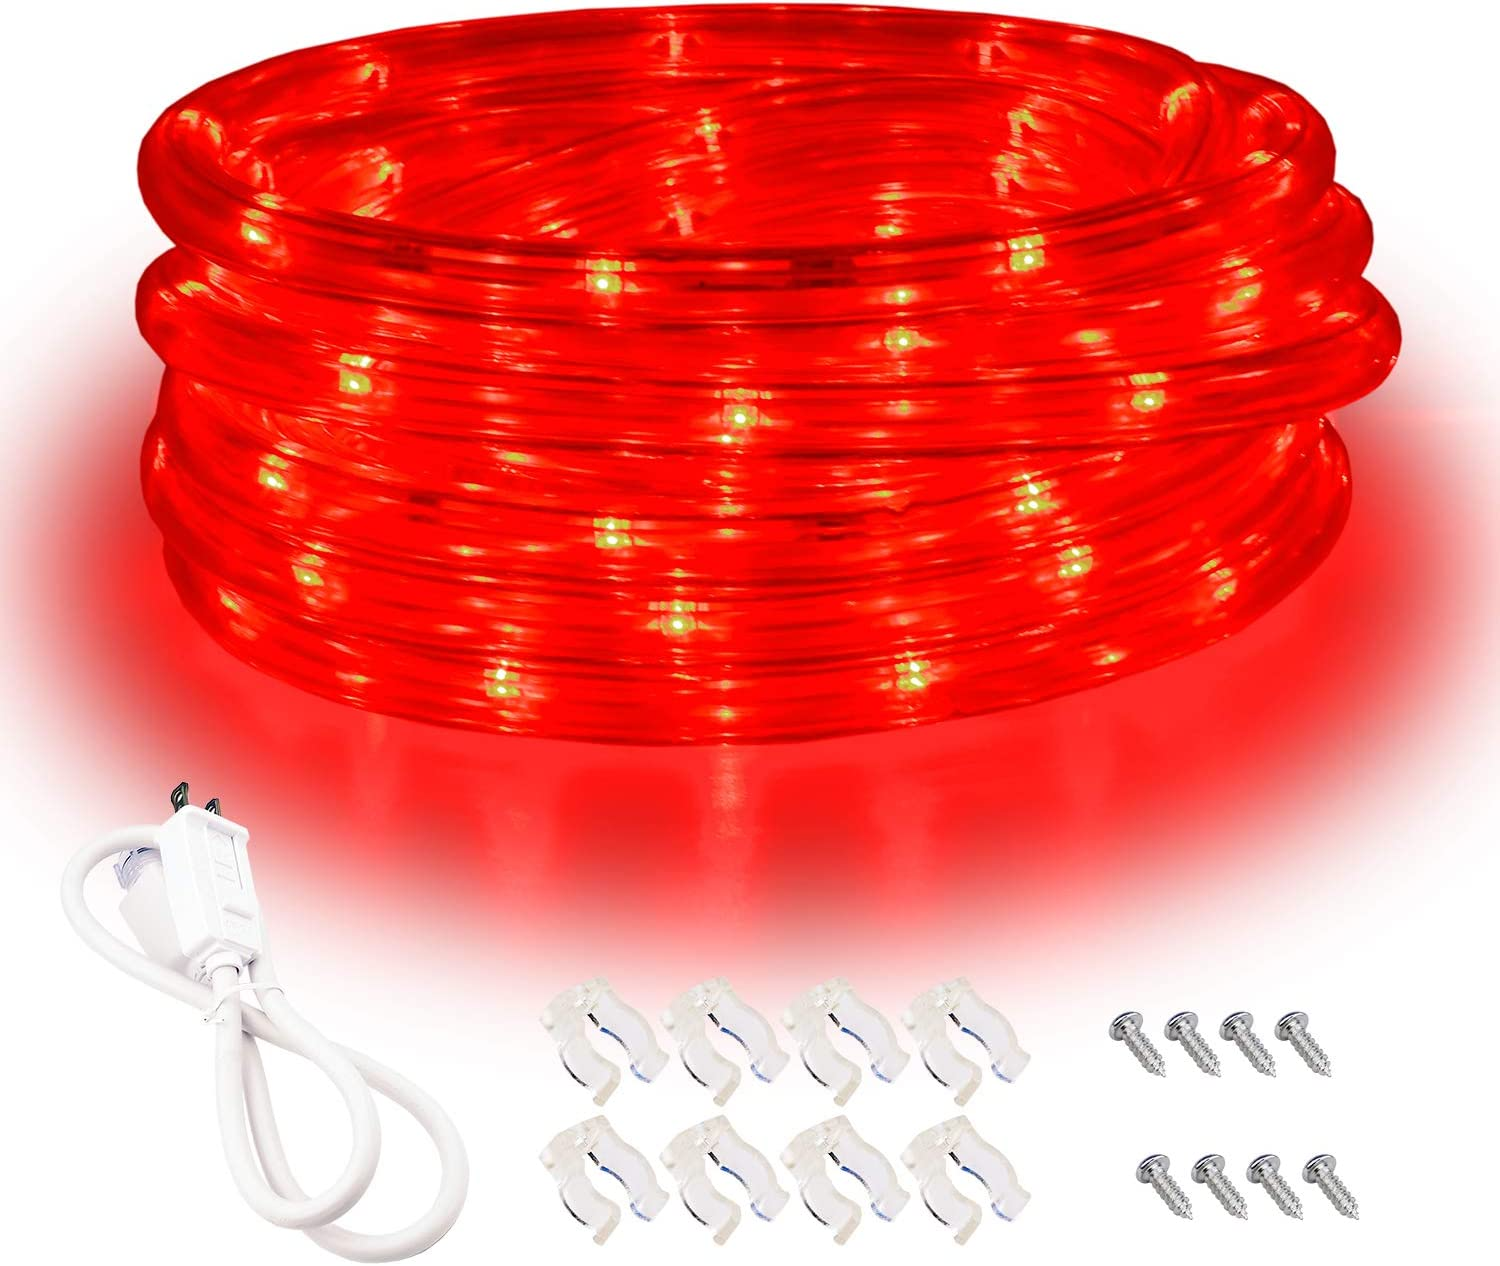 Red LED Lights, 16ft Rope Lights, Flexible and Connectable Strip Lighting, Waterproof for Indoor Outdoor Use, 360 Beam Angle, High Brightness for Home Christmas Thanksgiving Halloween